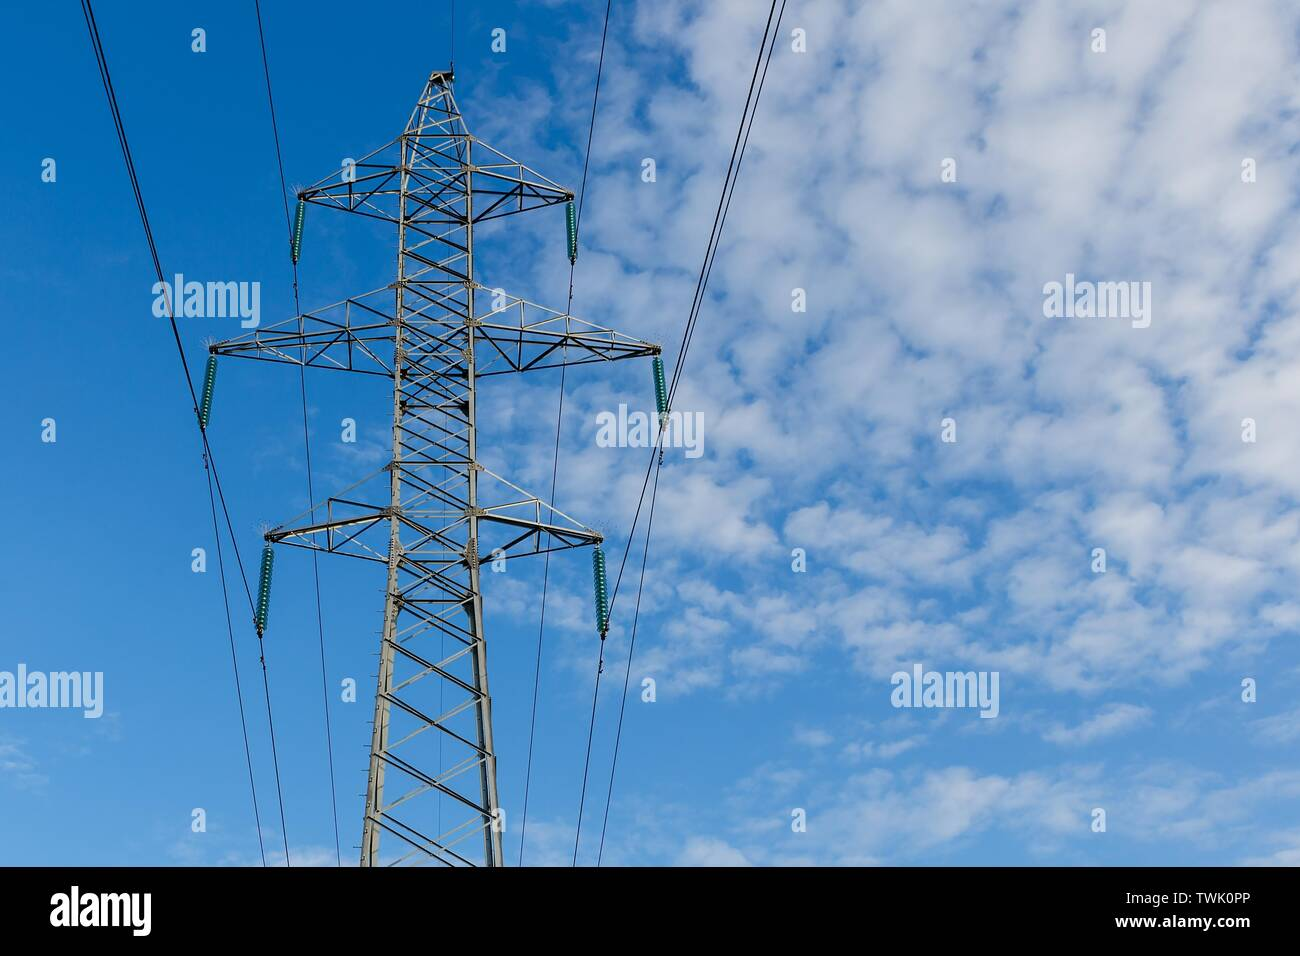 Power lines on metal pillars against a blue sky with clouds, high voltage power line - Stock Image